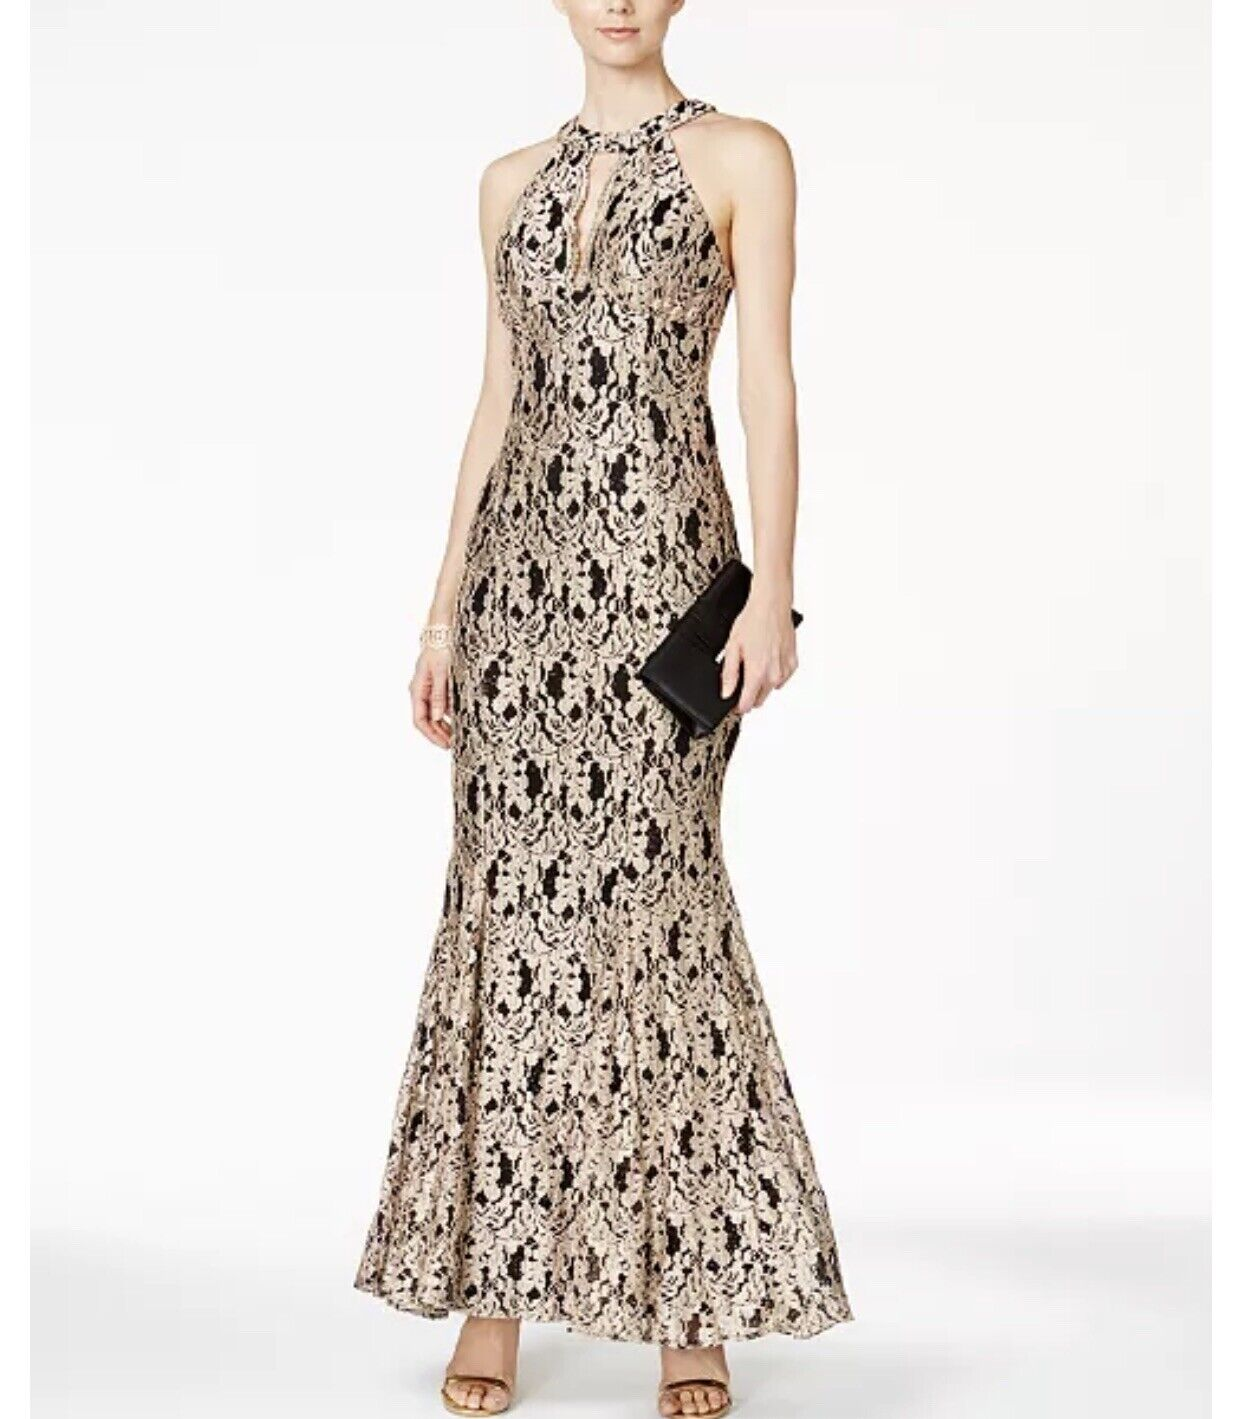 Nightway Lace Keyhole Mermaid Halter Gown 4 Gold Lace Maxi Formal Prom Pageant